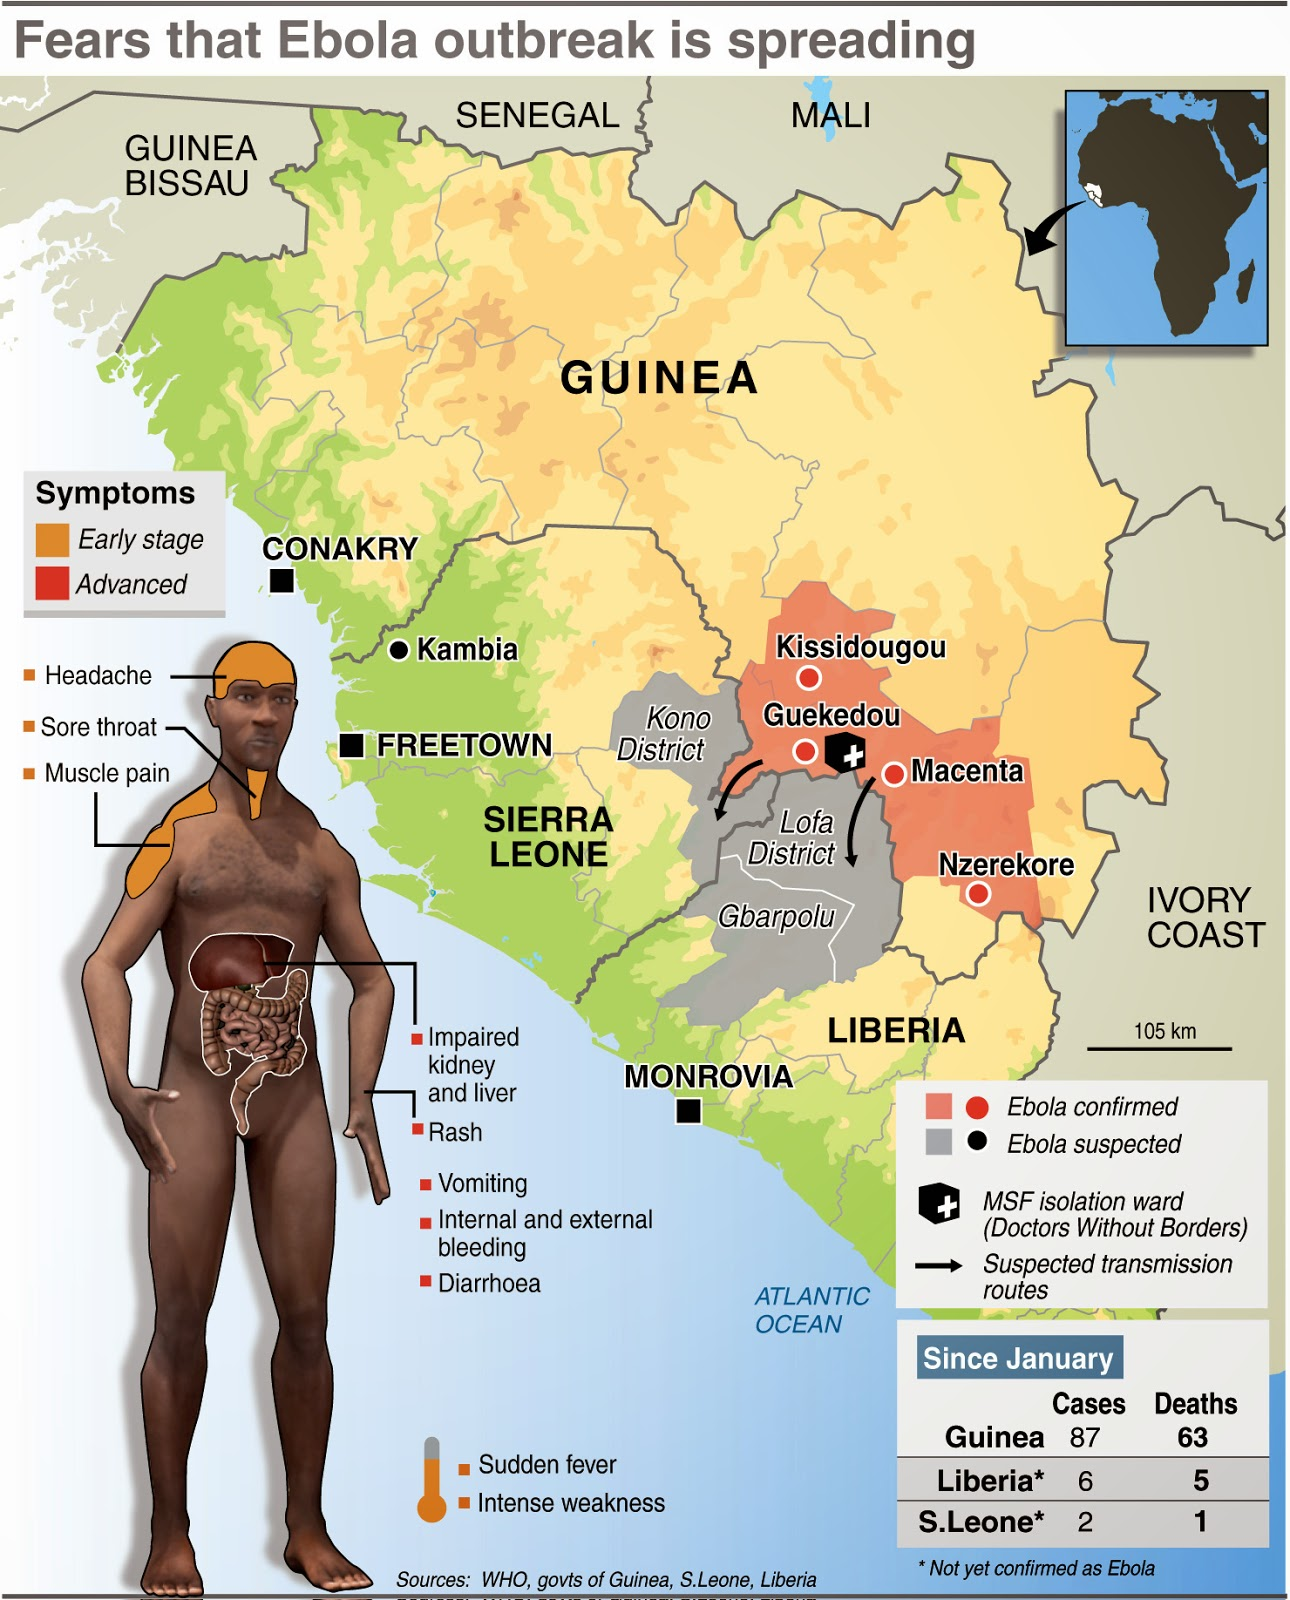 this meeting is promising but there is a real risk that ebola will spread other west african countries must heed the lesson of guinea sierra leone